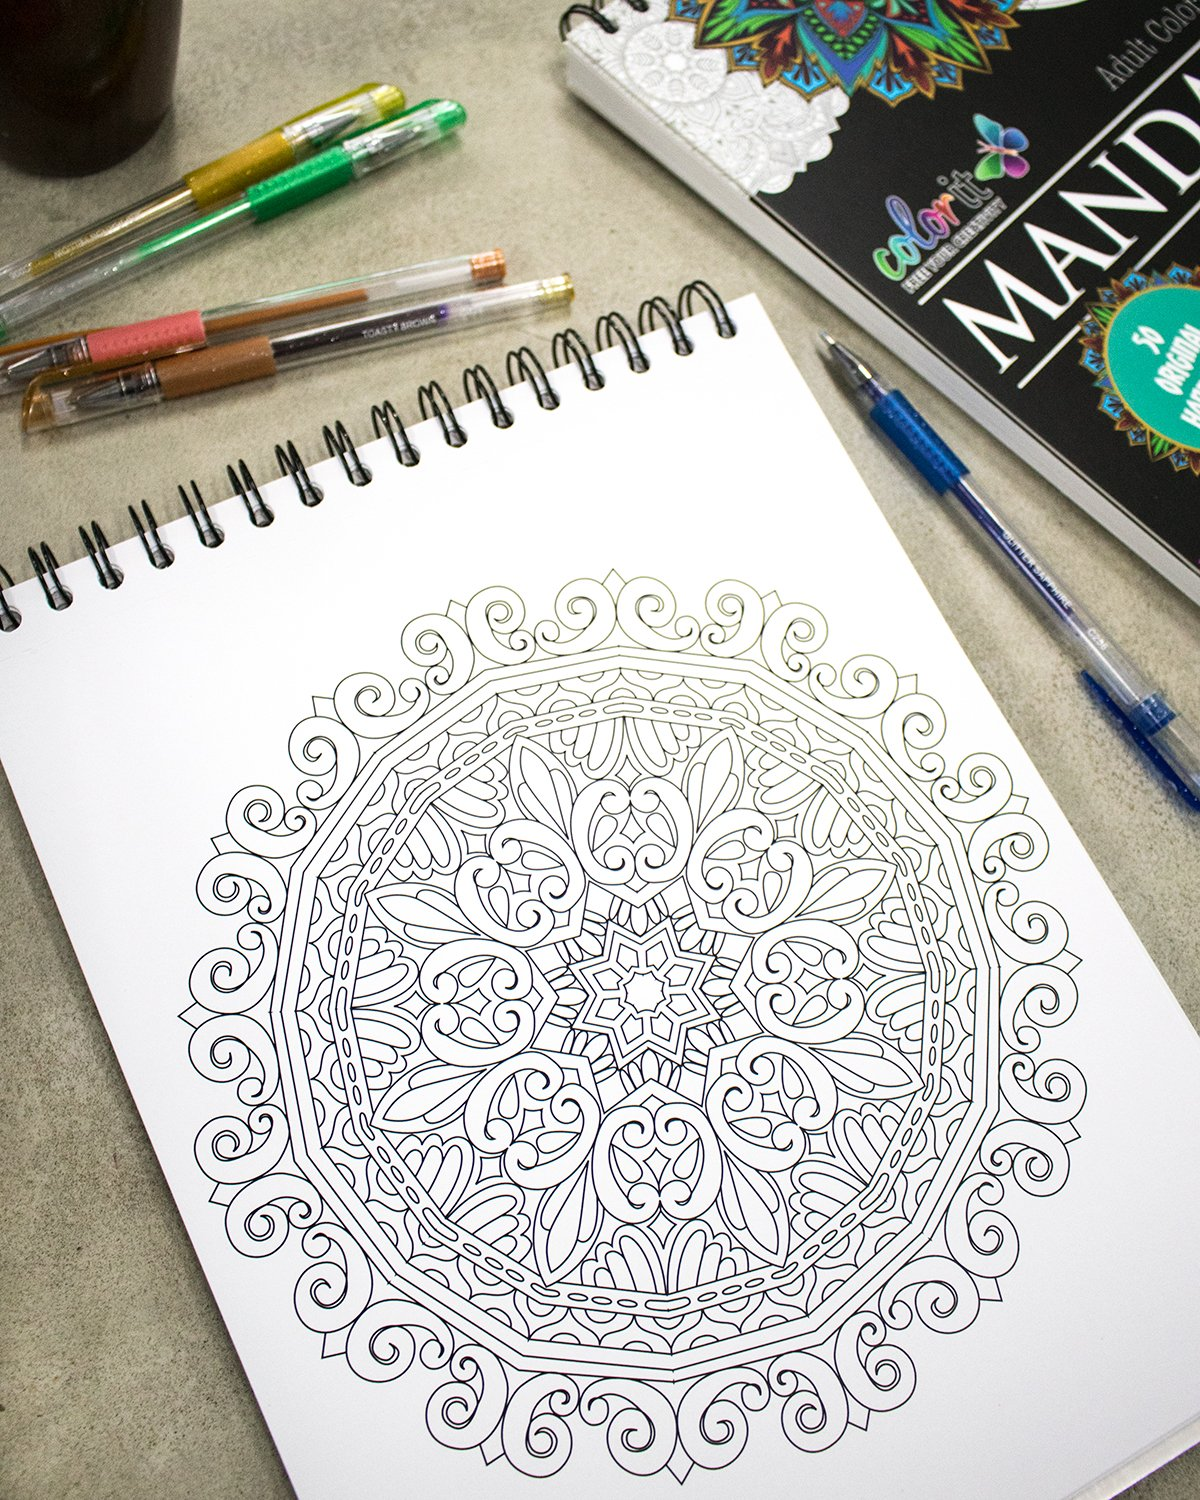 Mandala Coloring Book For Adults With Thick Artist Quality Paper, Hardback  Covers, and Spiral Binding by ColorIt: ColorIt, Terbit Basuki:  9780996511216: ...